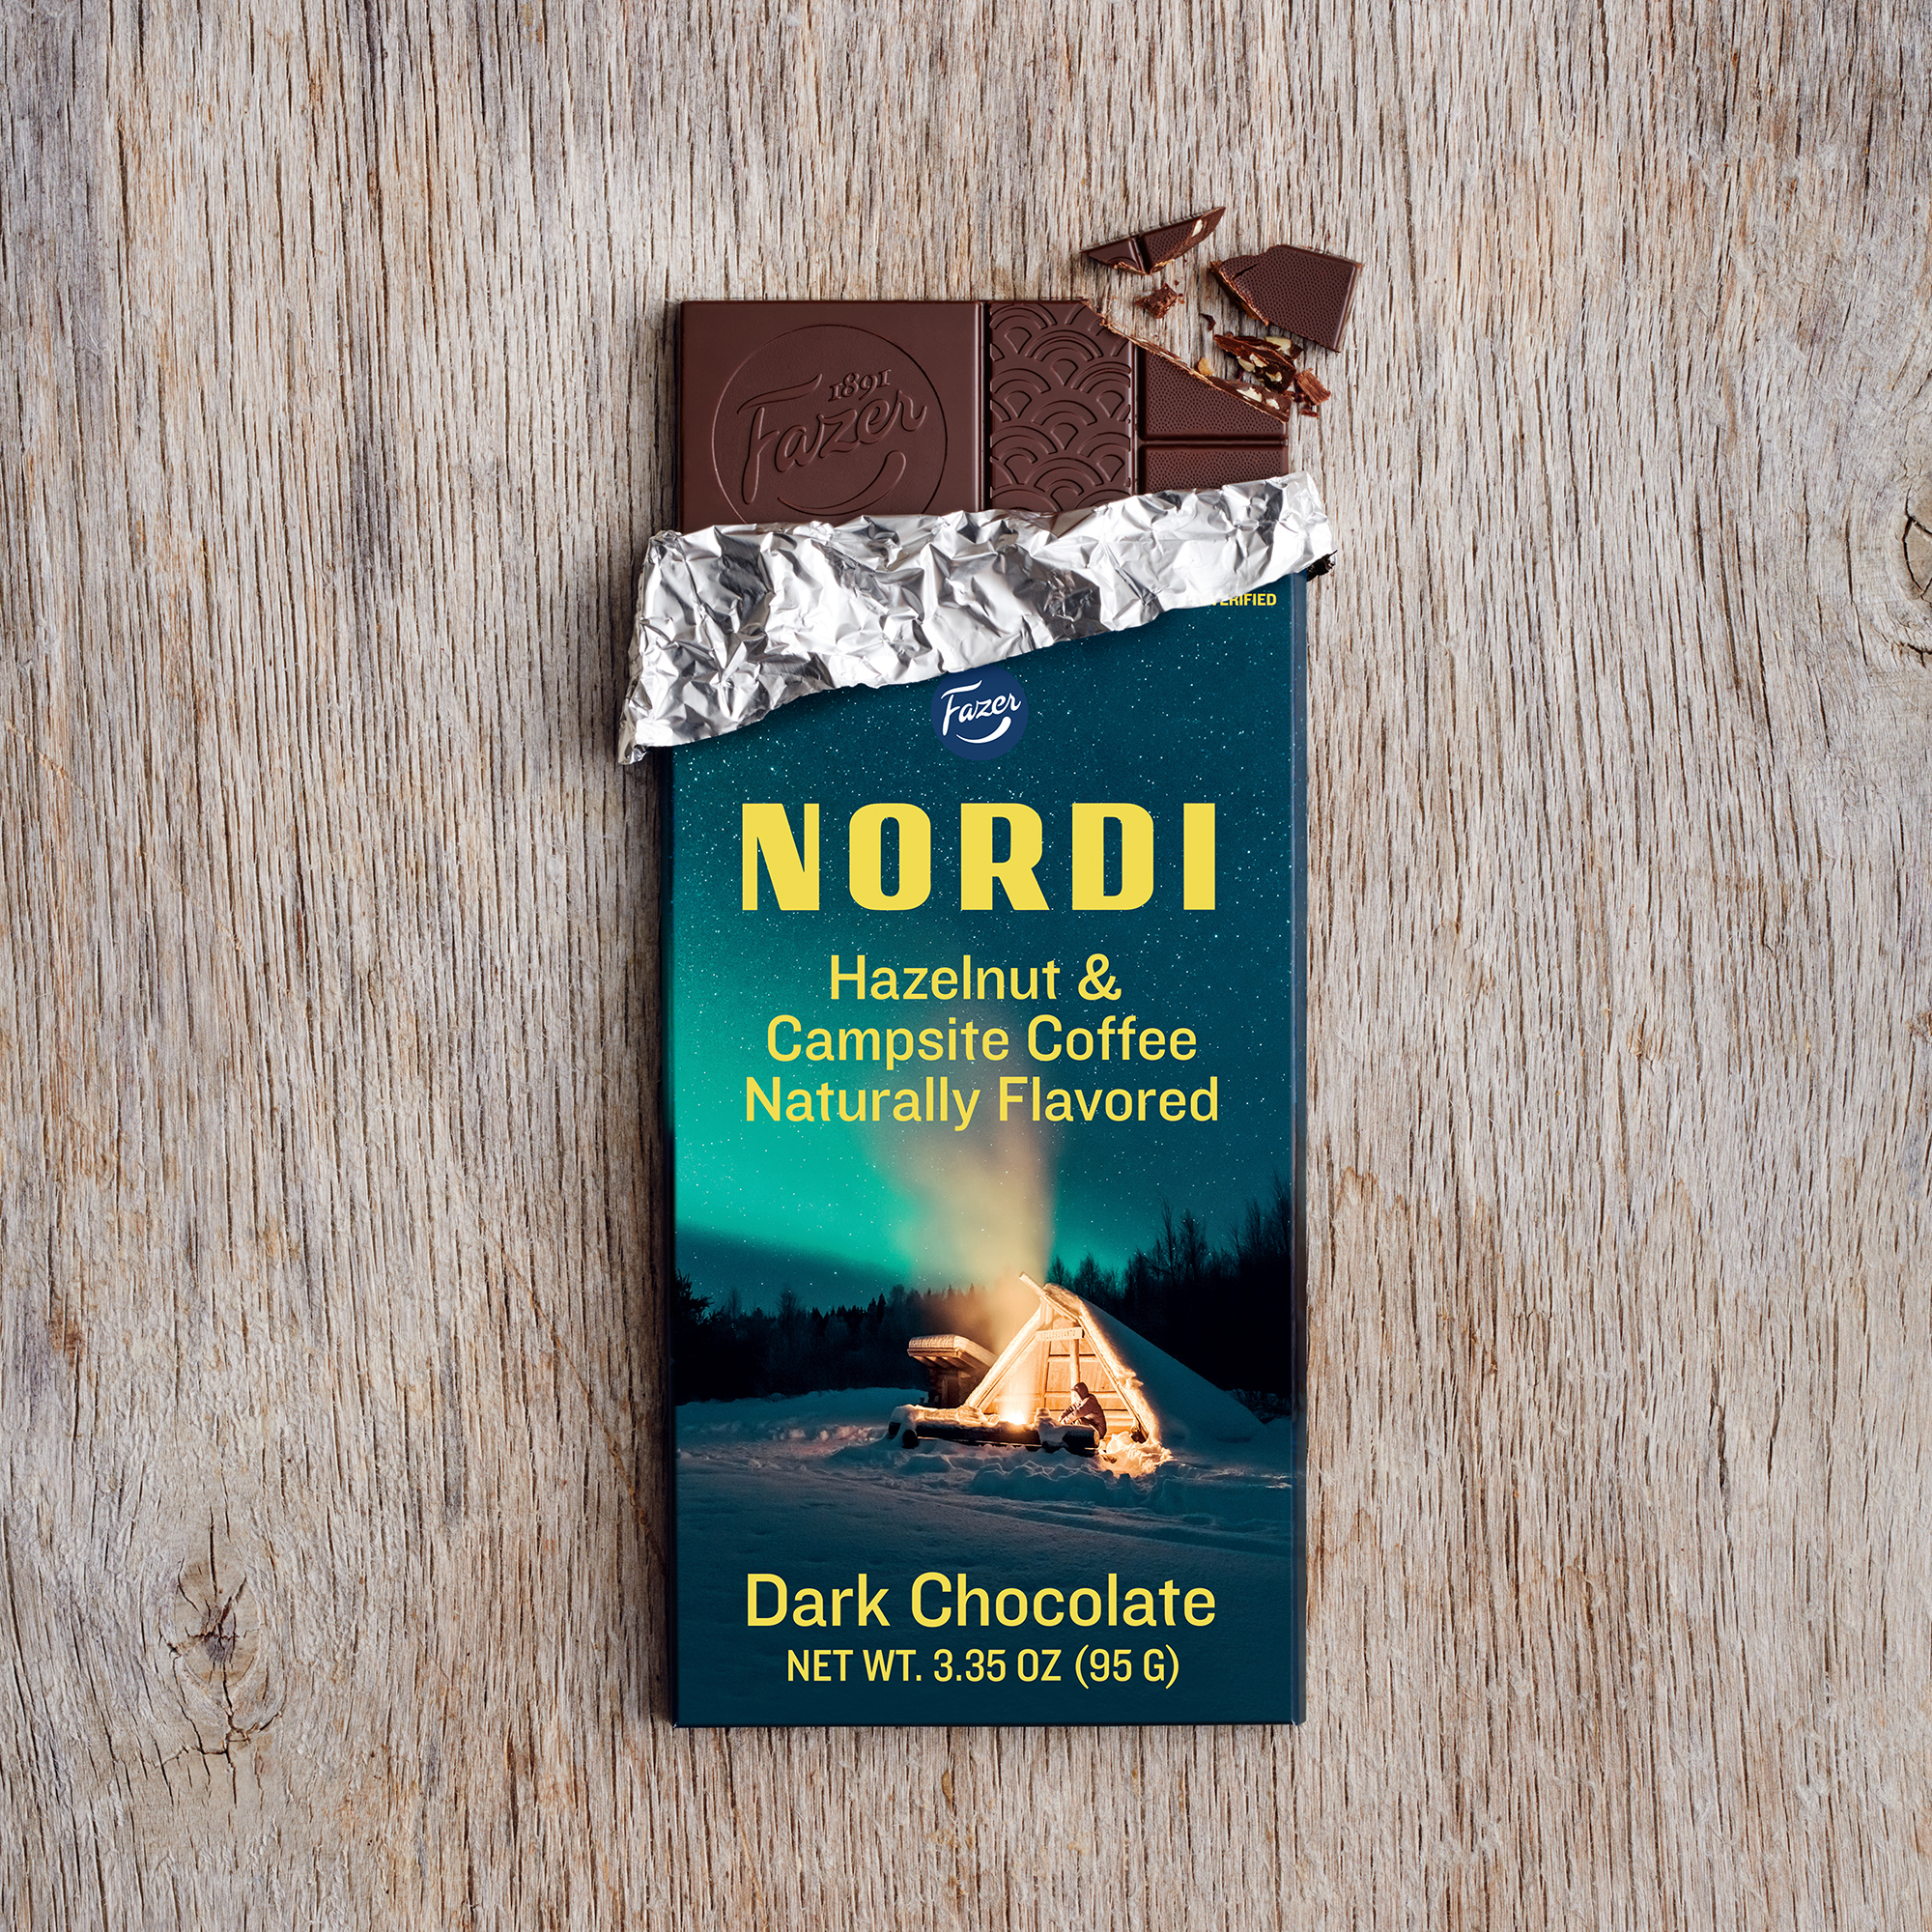 NORDI Hazelnut & Campsite Coffee